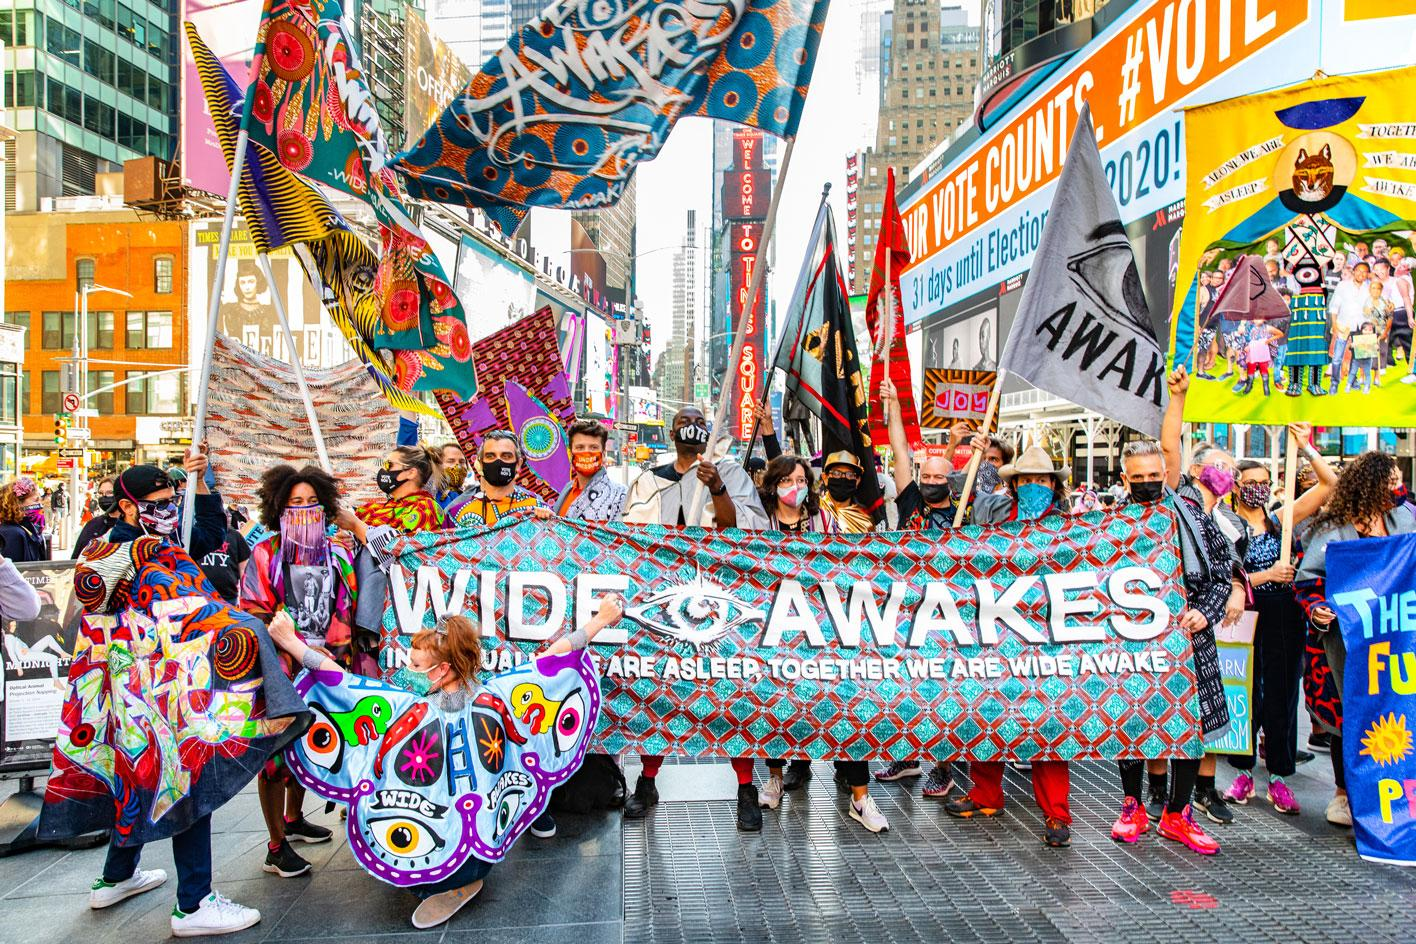 Wide Awakes march in New York on 3October2020